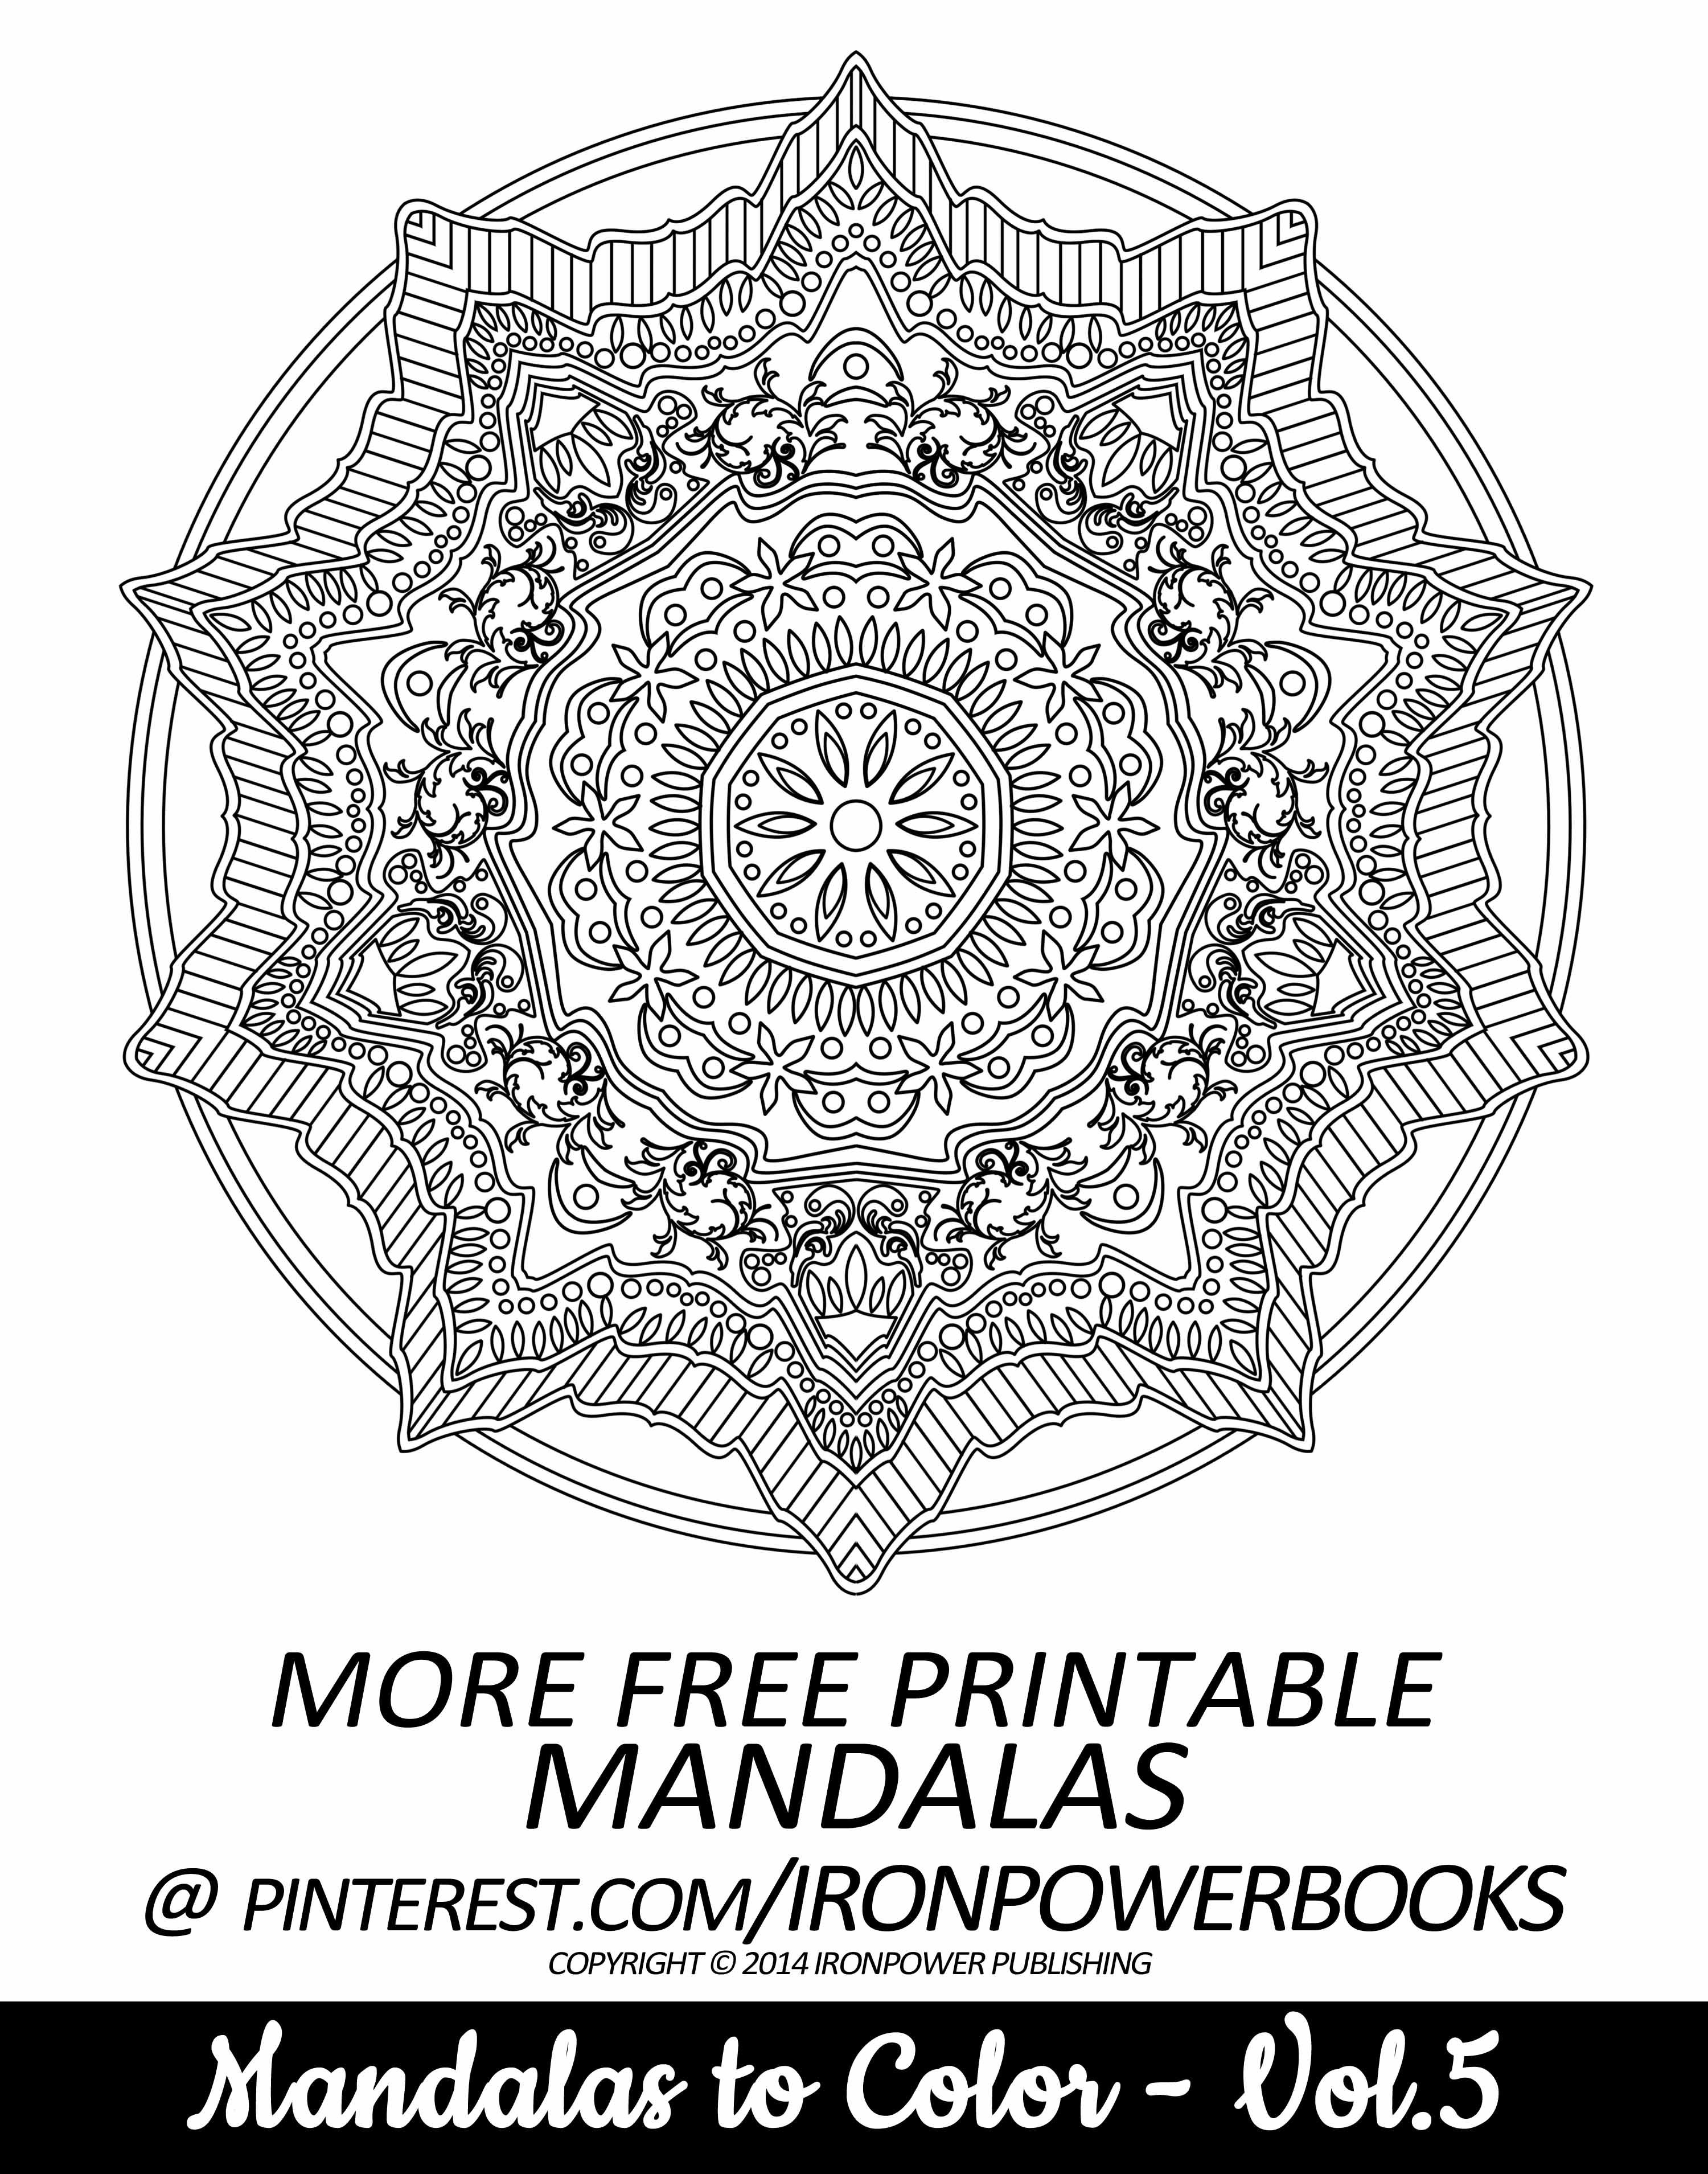 Mandala Intricate Design FREE for personal use